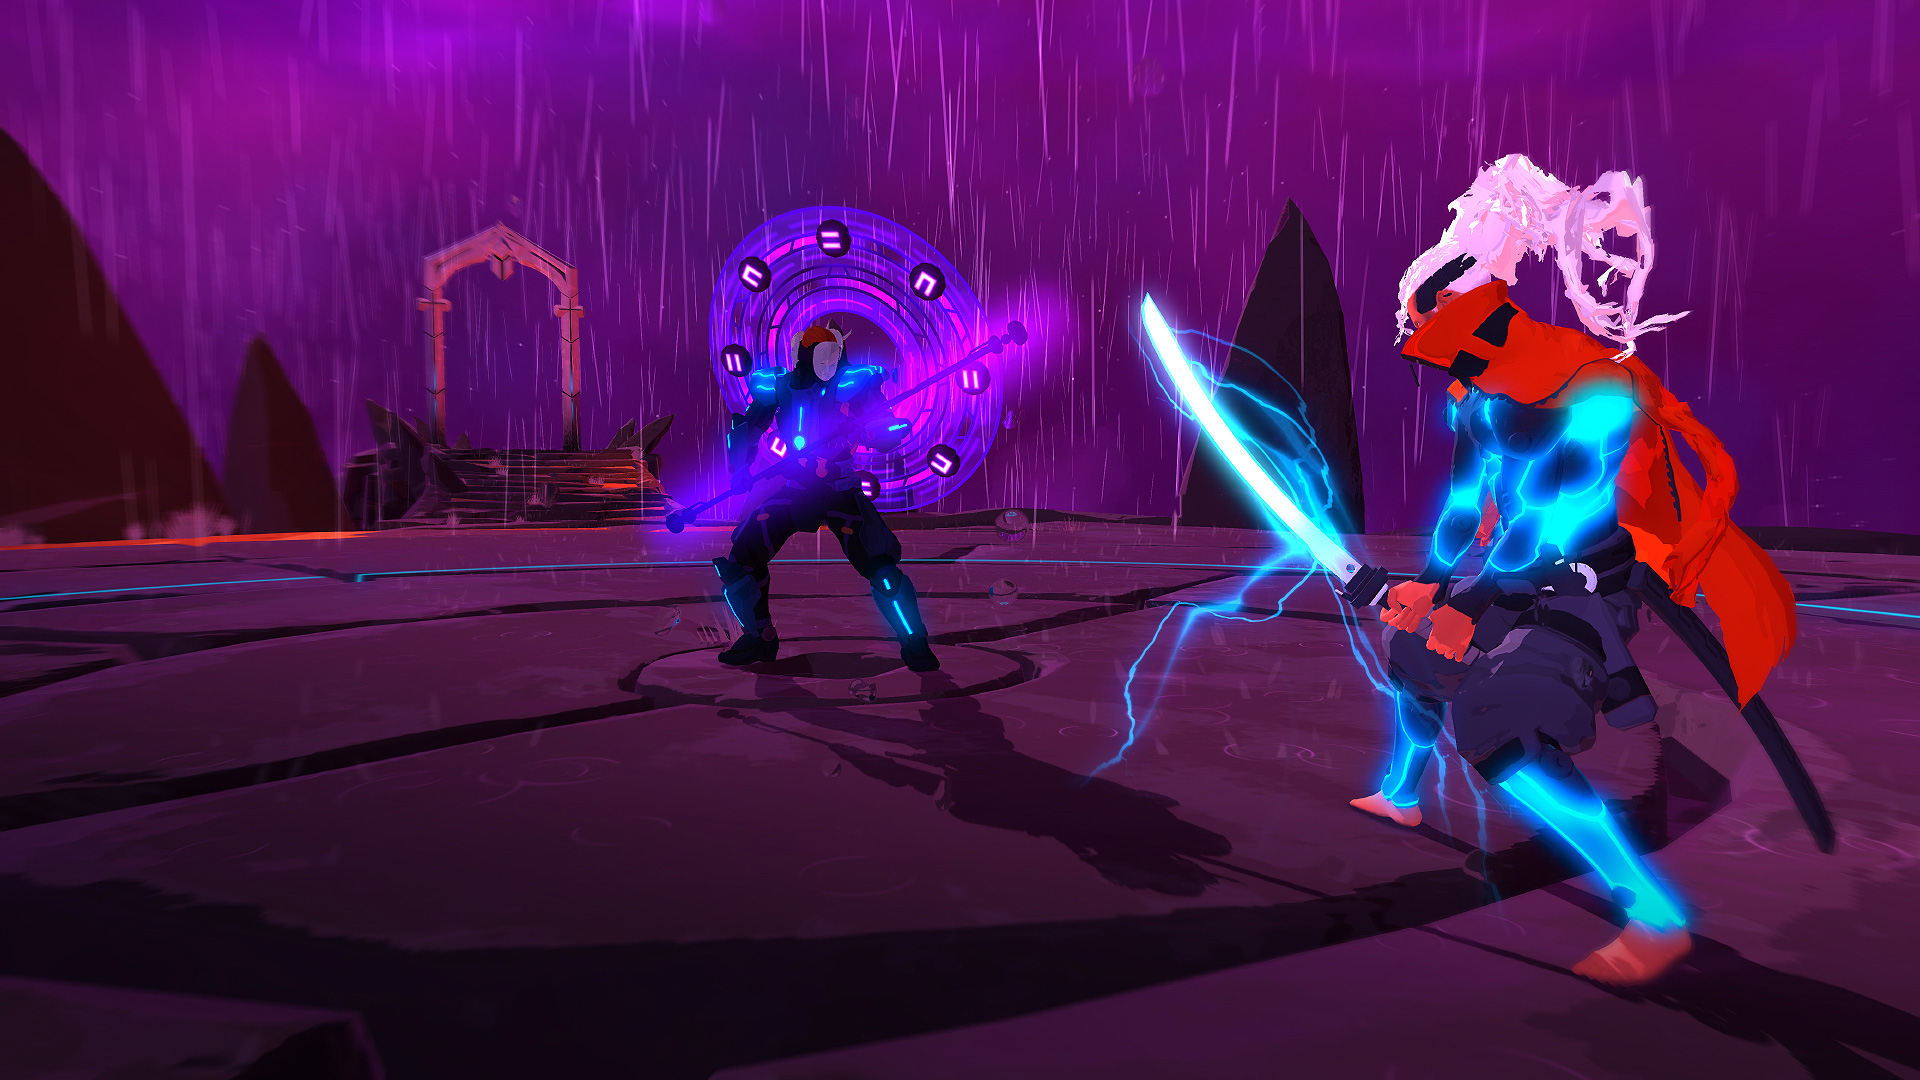 Furi game image